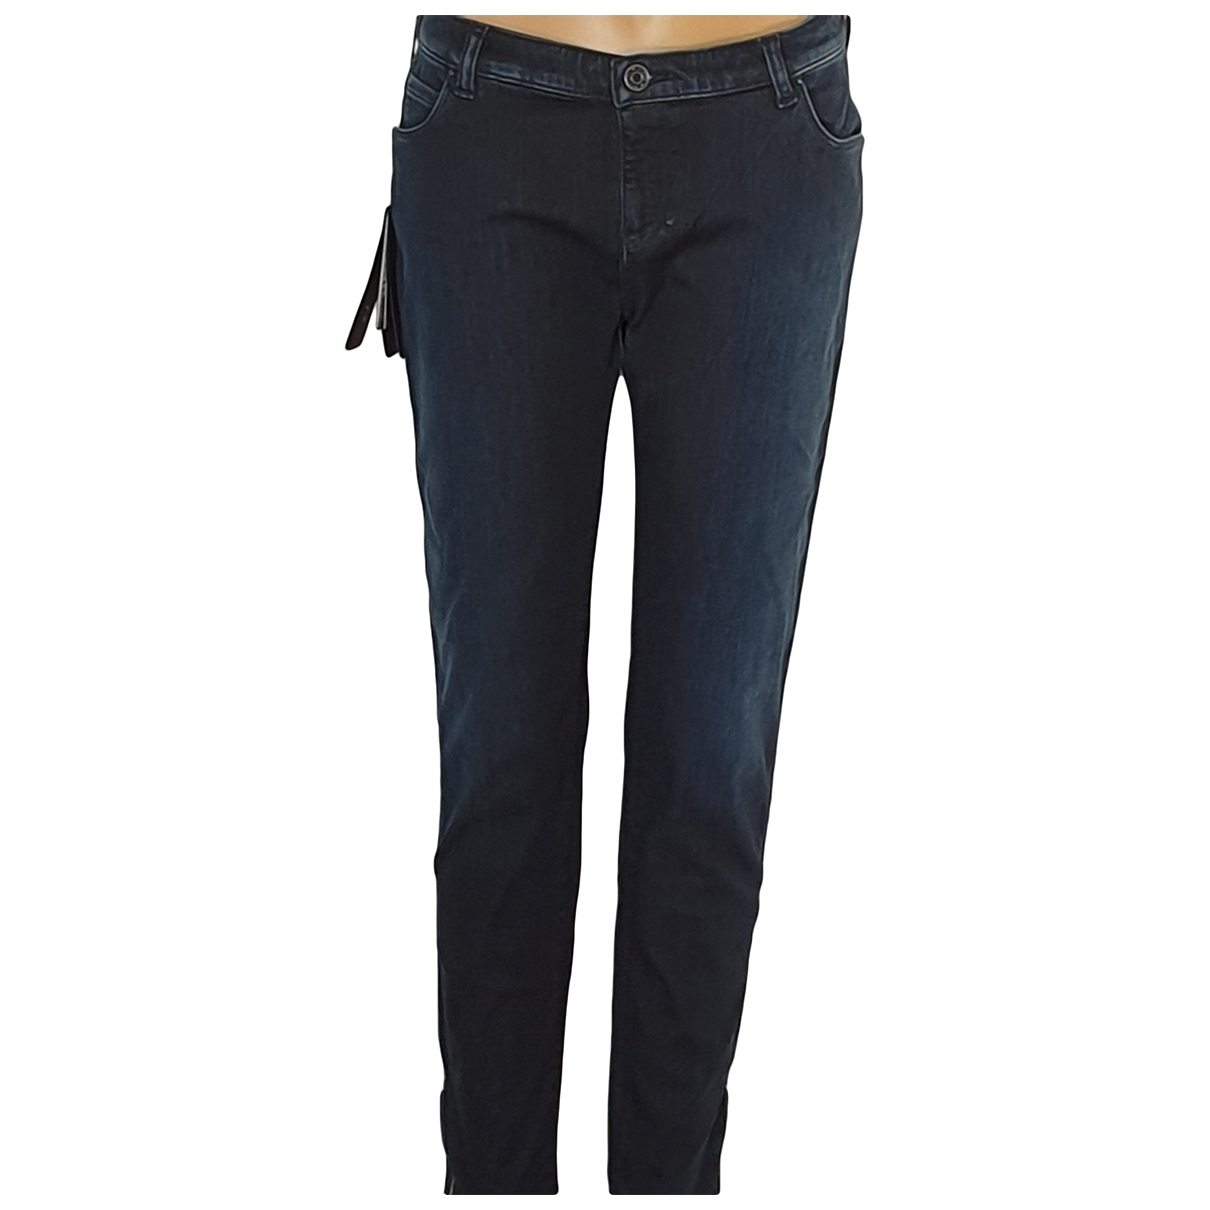 Armani Jeans \N Blue Cotton - elasthane Jeans for Women 38 FR